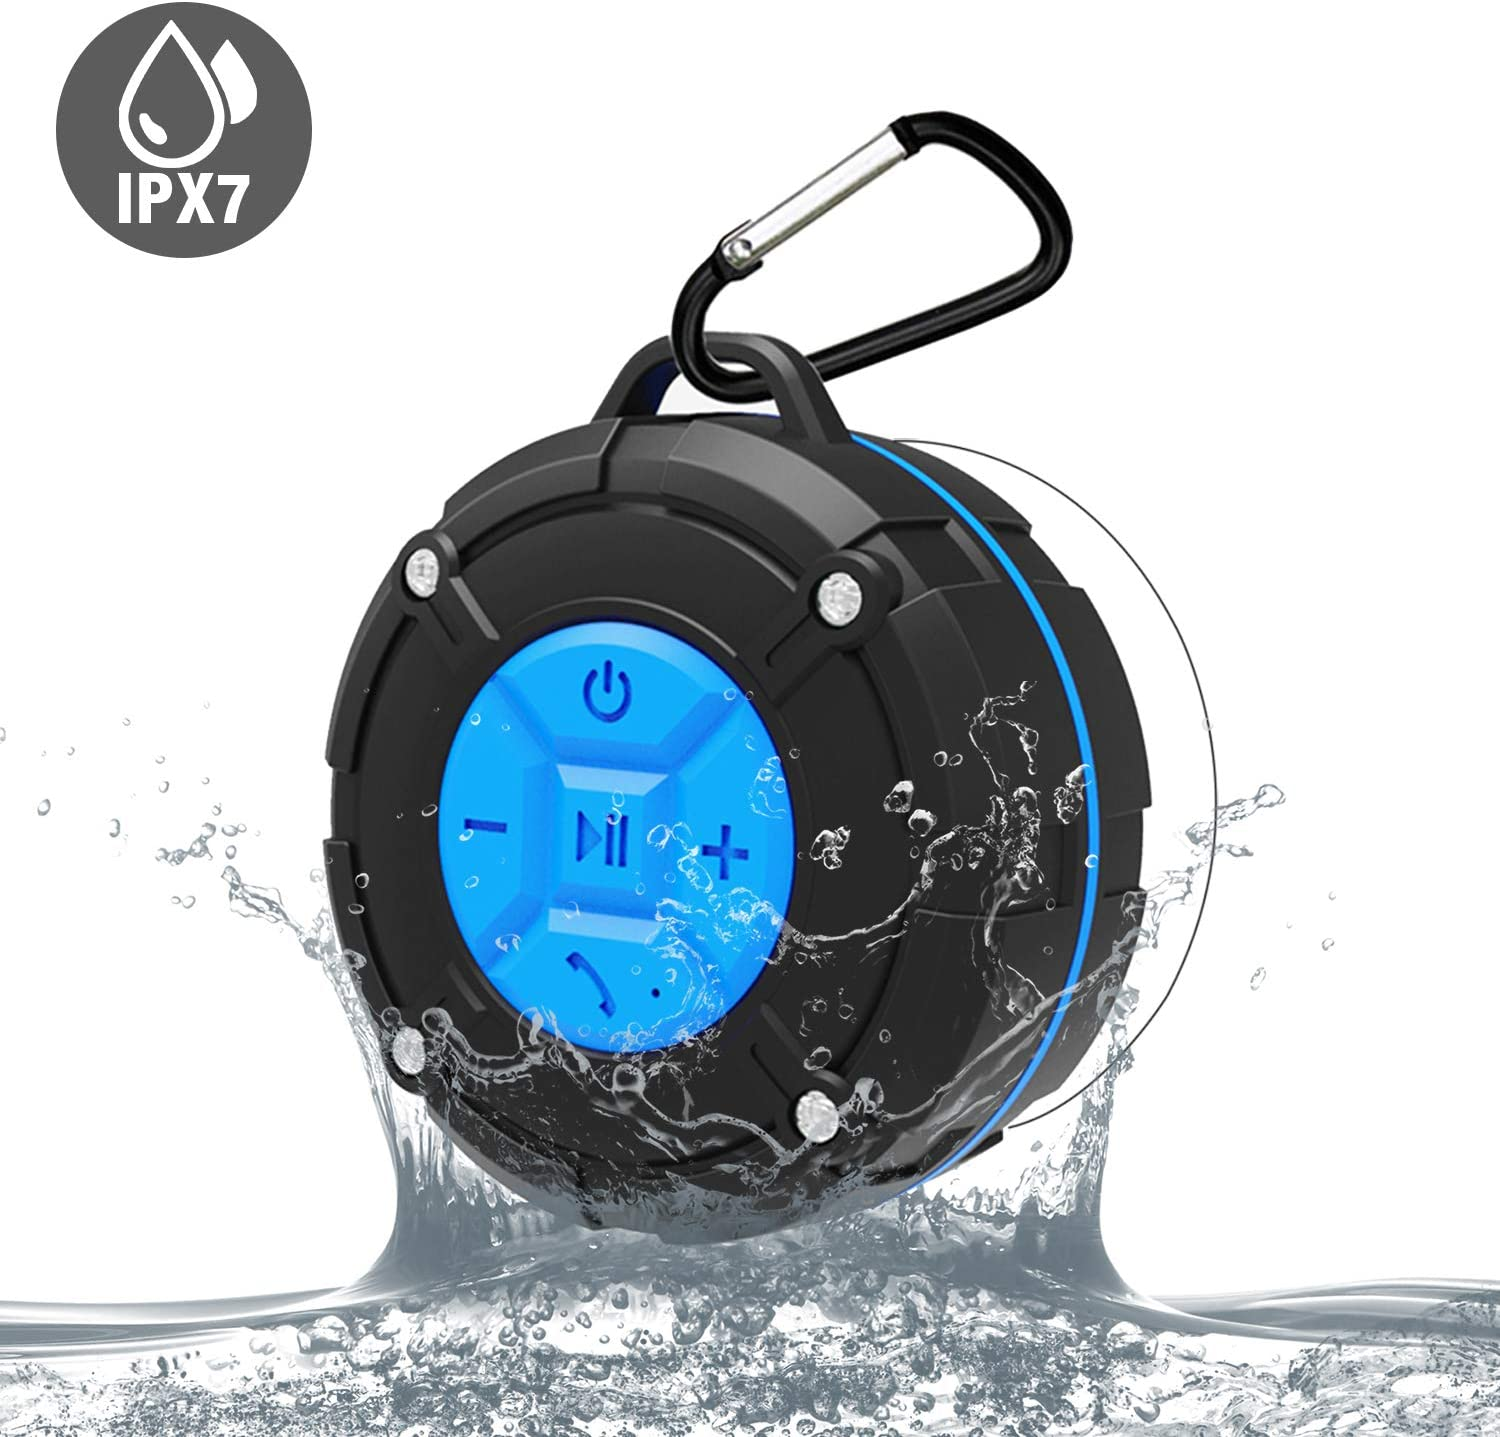 Camping Cycling Portable Wireless Mini Waterproof Stereo Sound System for Shower,Portable IPX7 Waterproof Wireless Bluetooth Speaker,Bluetooth Shower Speaker,Outdoor Hiking